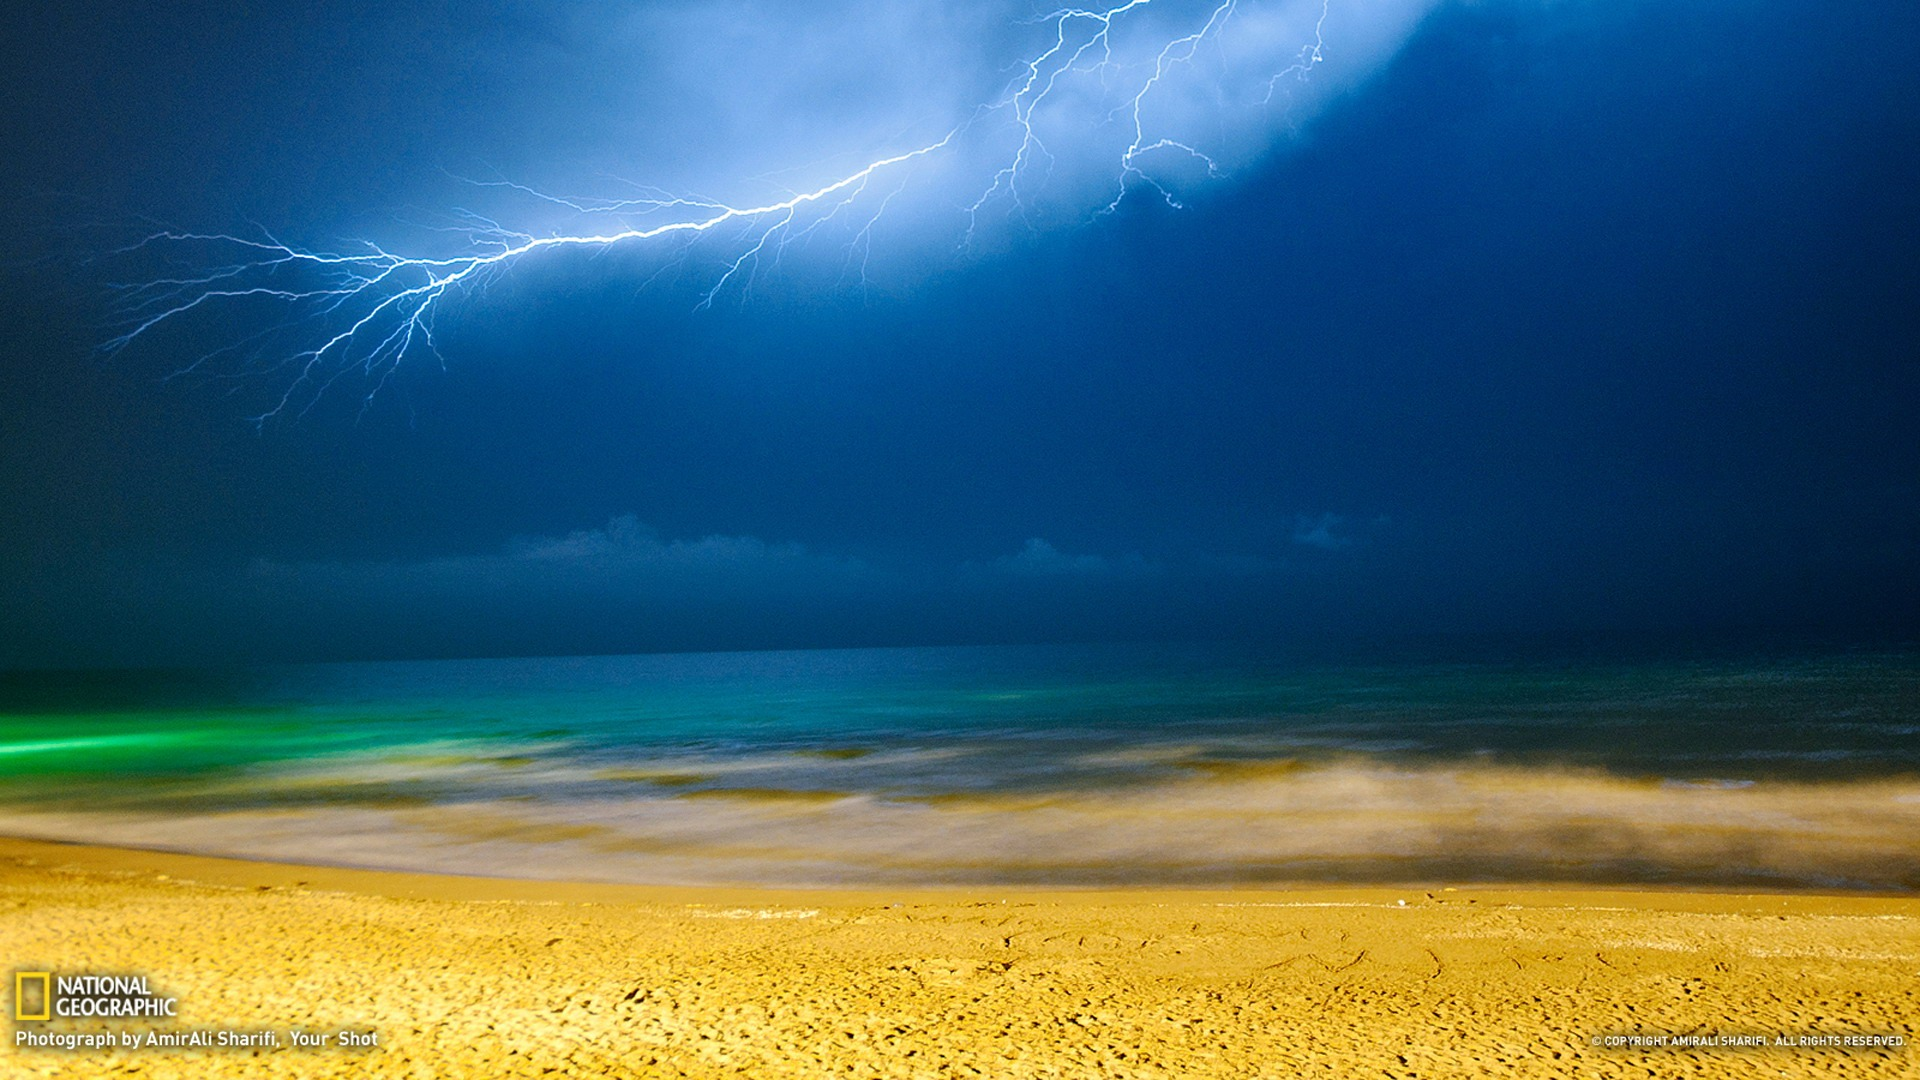 Lightning Iran National Geographic Best Wallpapers Of 2012